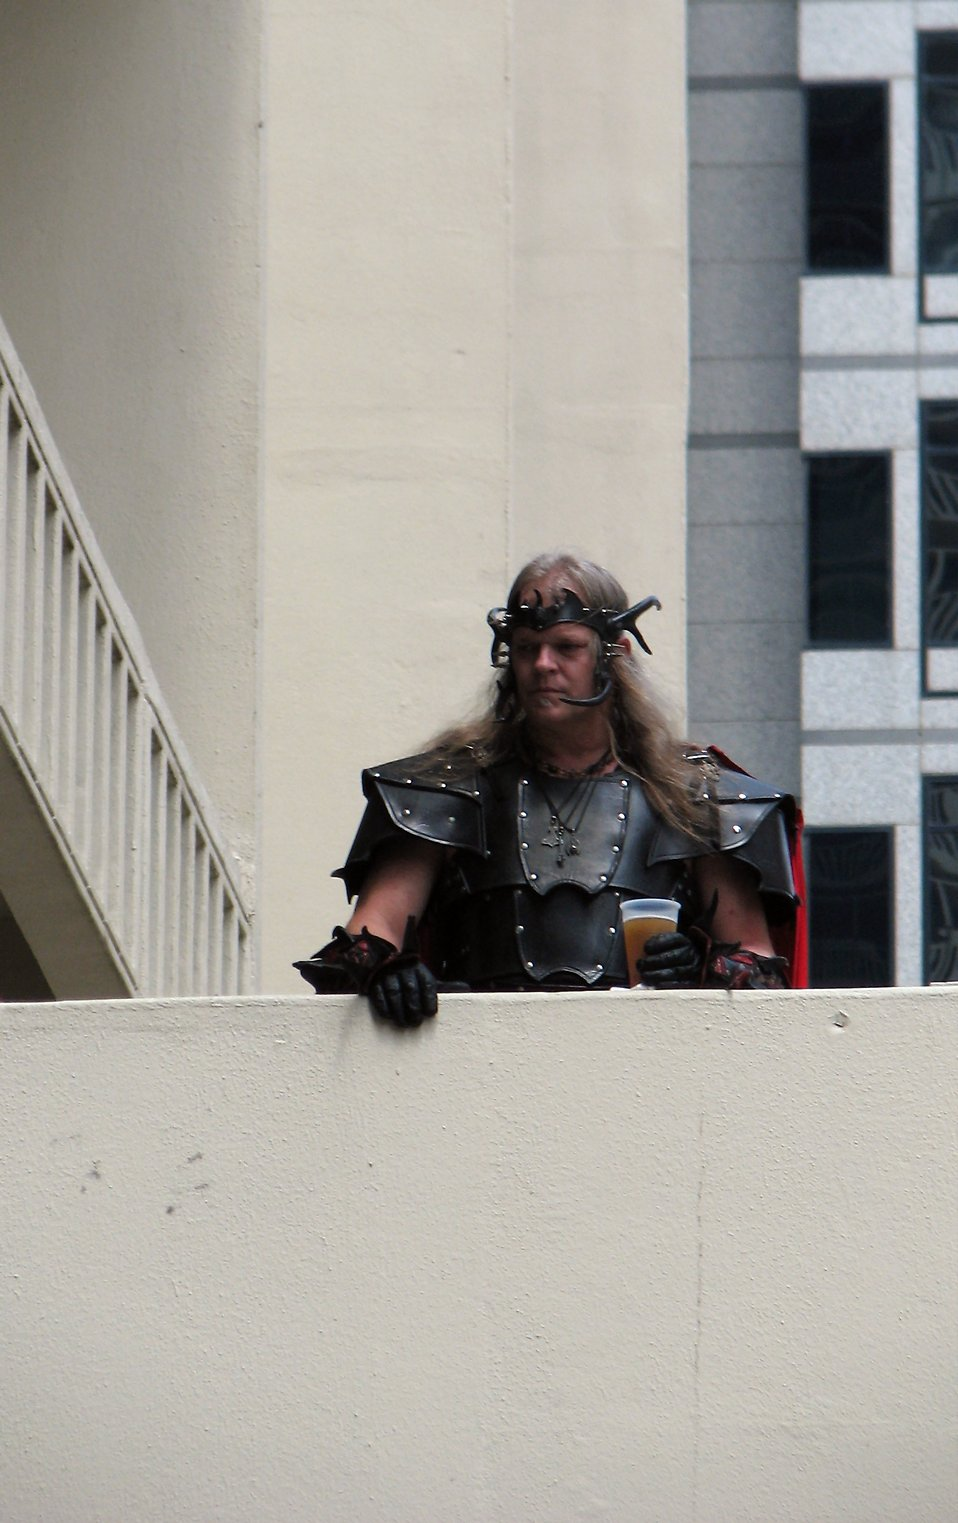 Man in leather costume in balcony at Dragoncon 2008 : Free Stock Photo